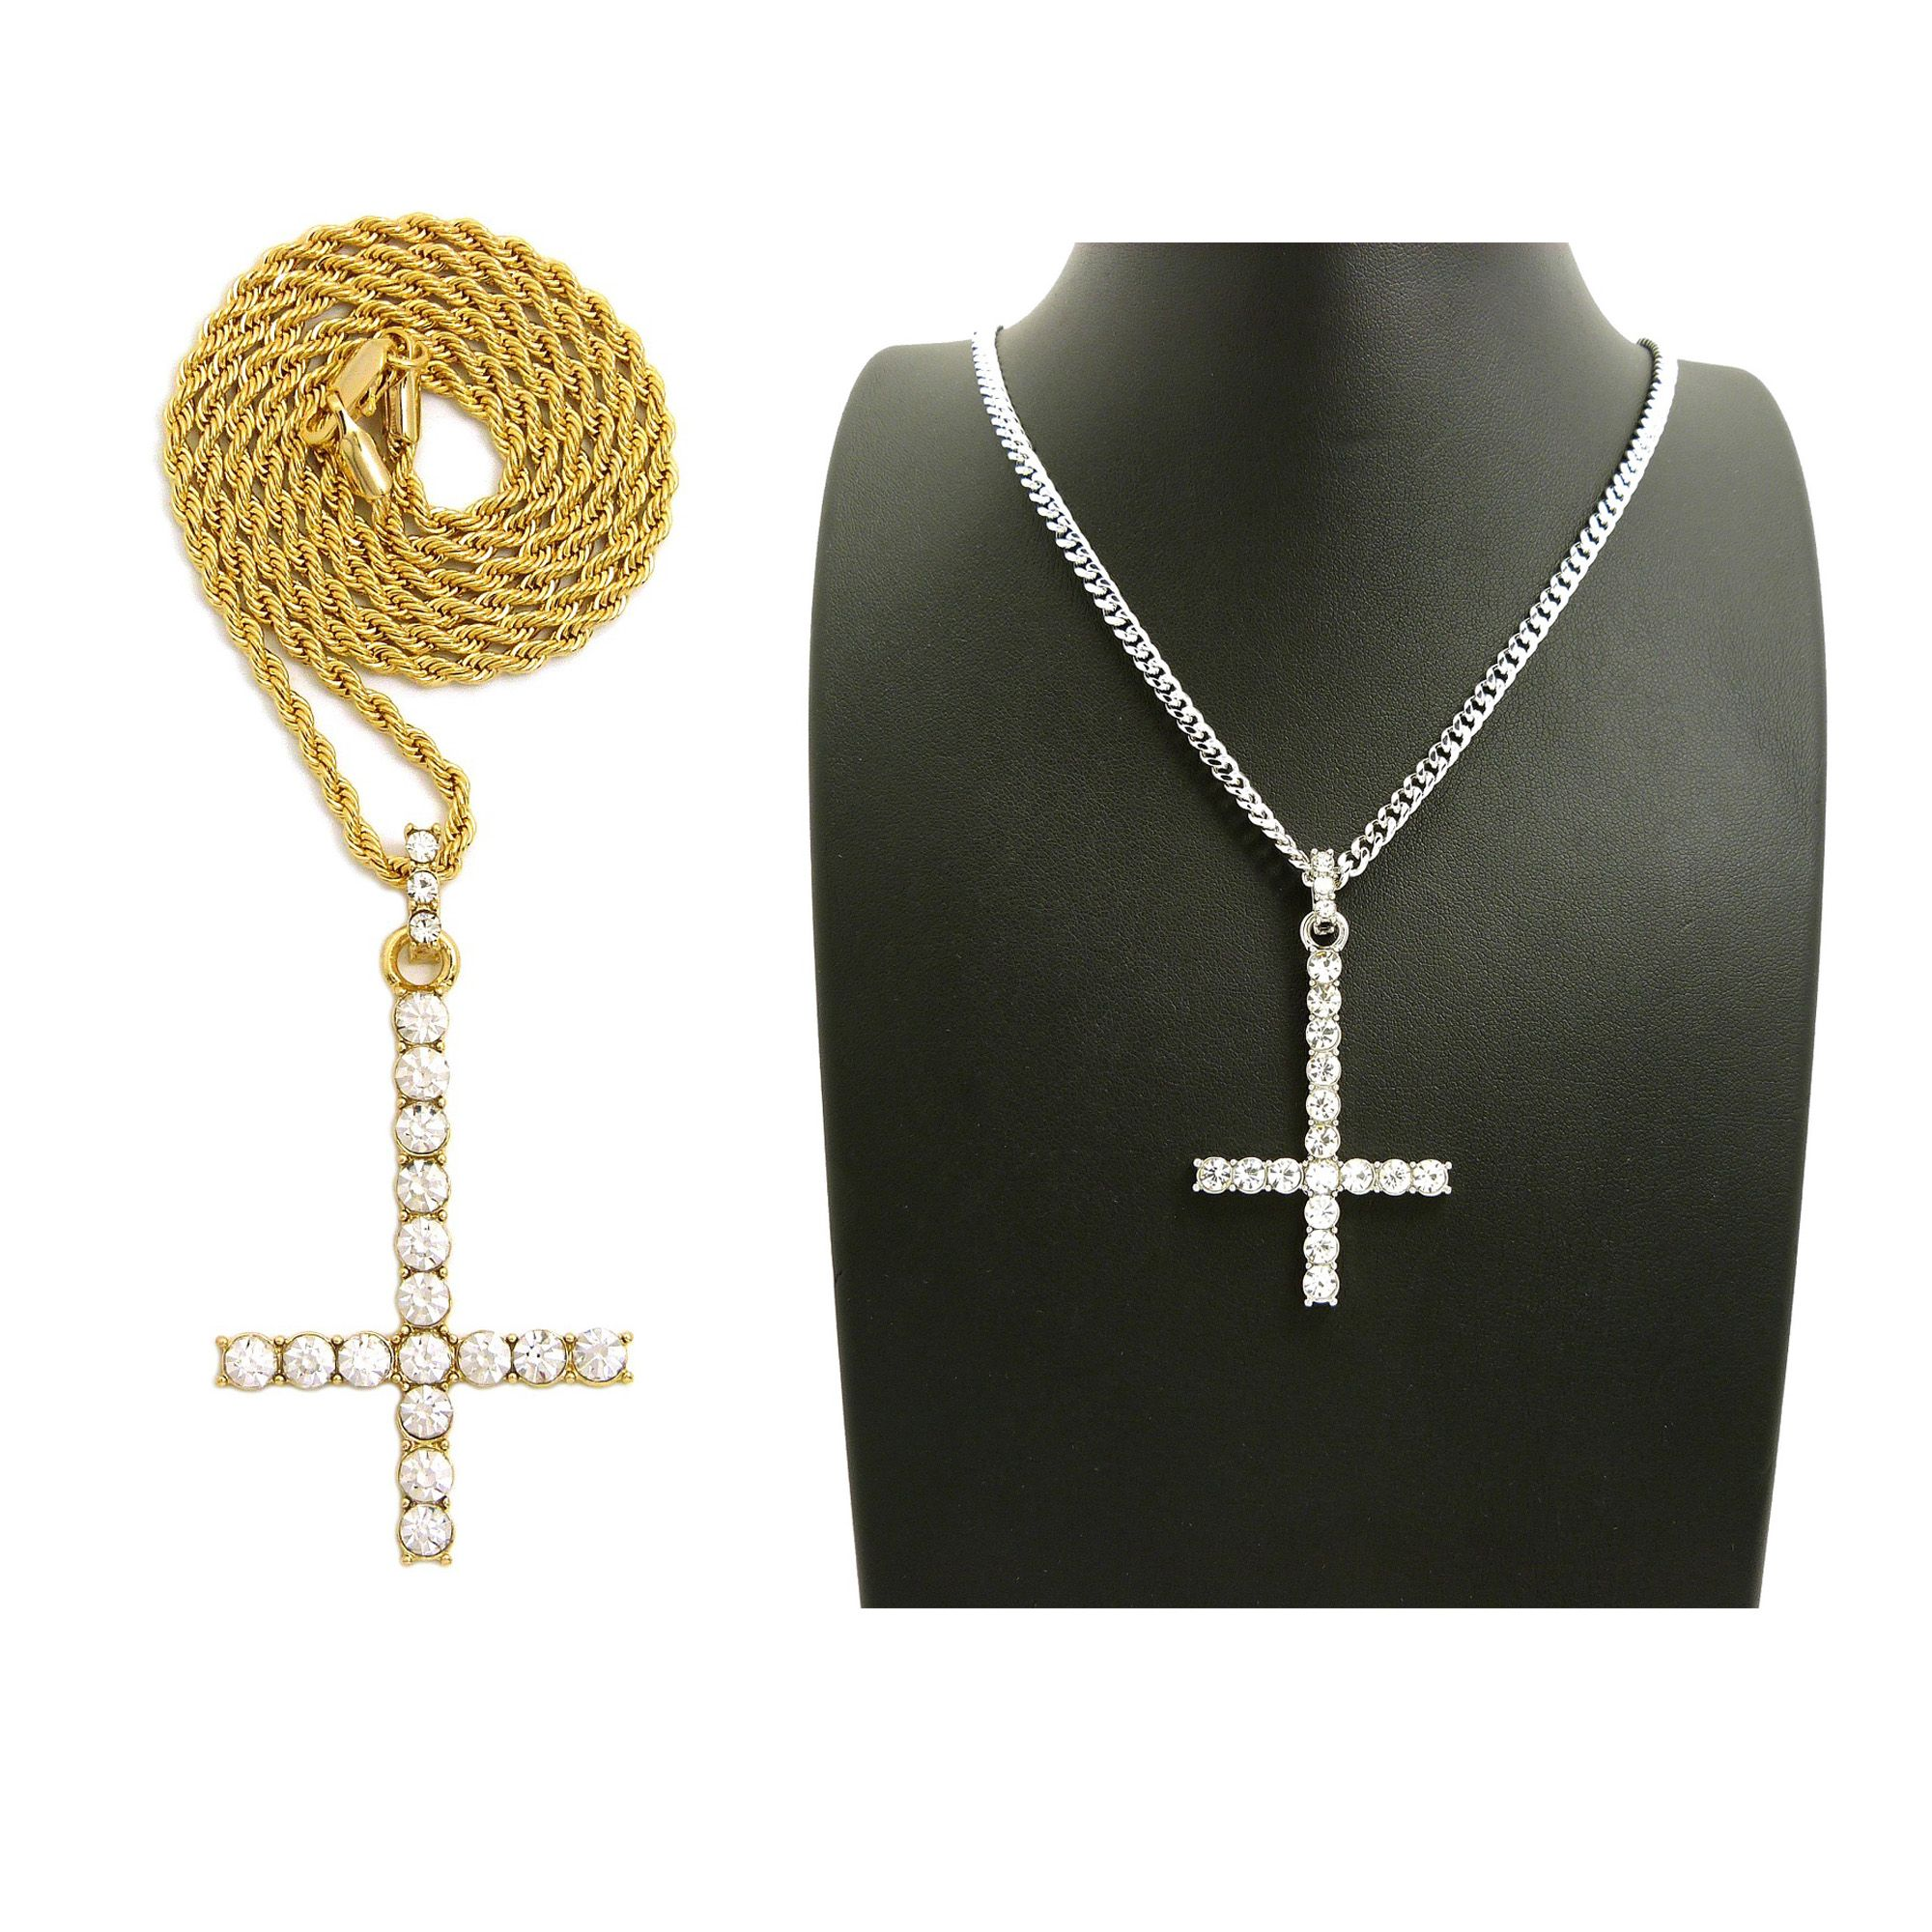 Iced out cross of st peter pendant 24 boxcubanrope chain iced out cross of st peter pendant 24 boxcubanrope chain necklaces rc2905 aloadofball Images